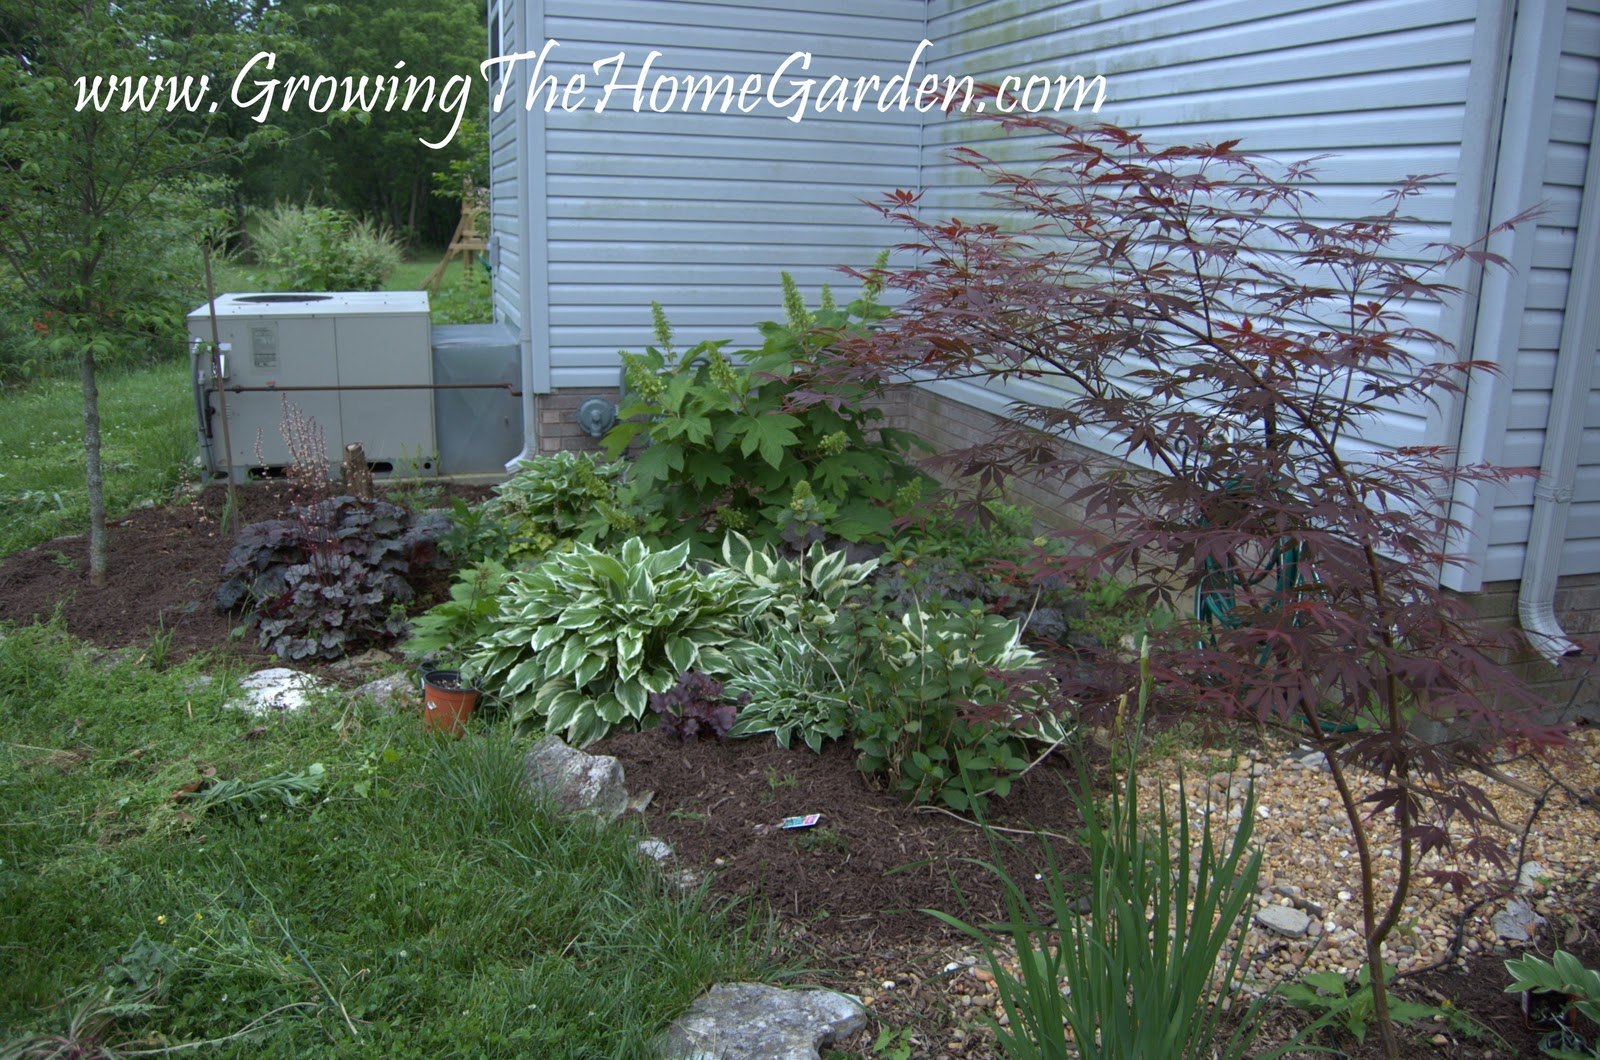 Growing The Home Garden: The Corner Shade Garden